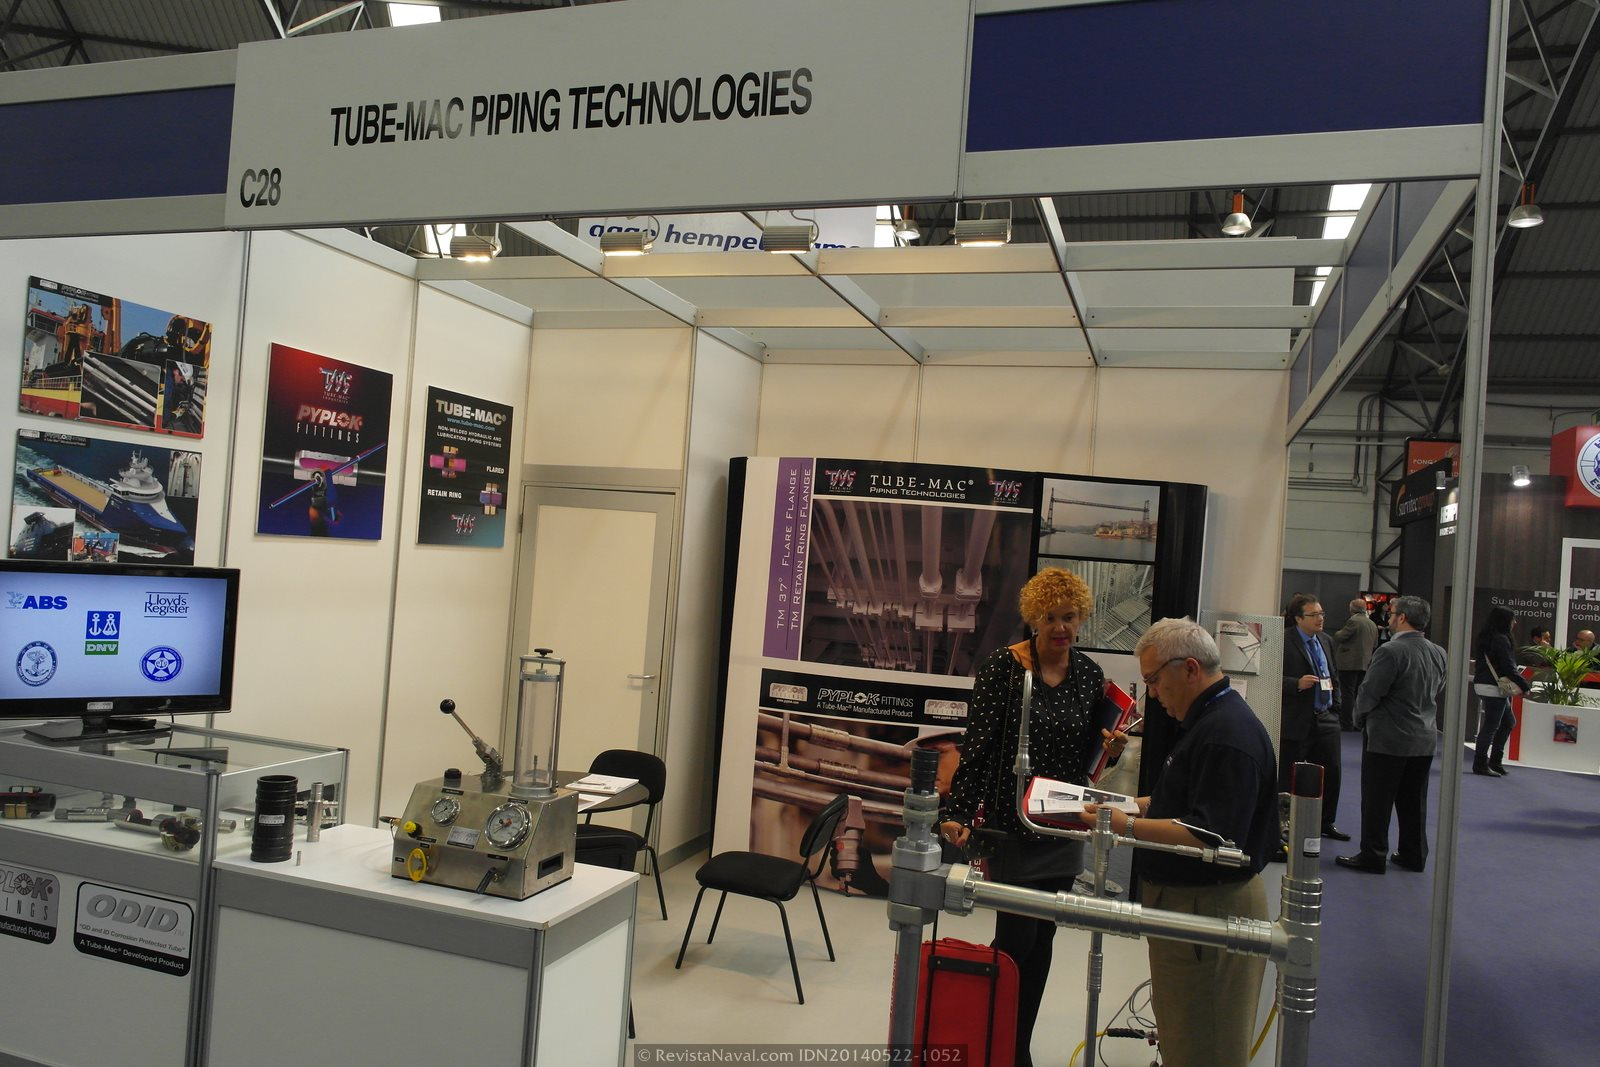 Estand de Tube-Mac Pipping Technologies (Foto: Revista Naval)